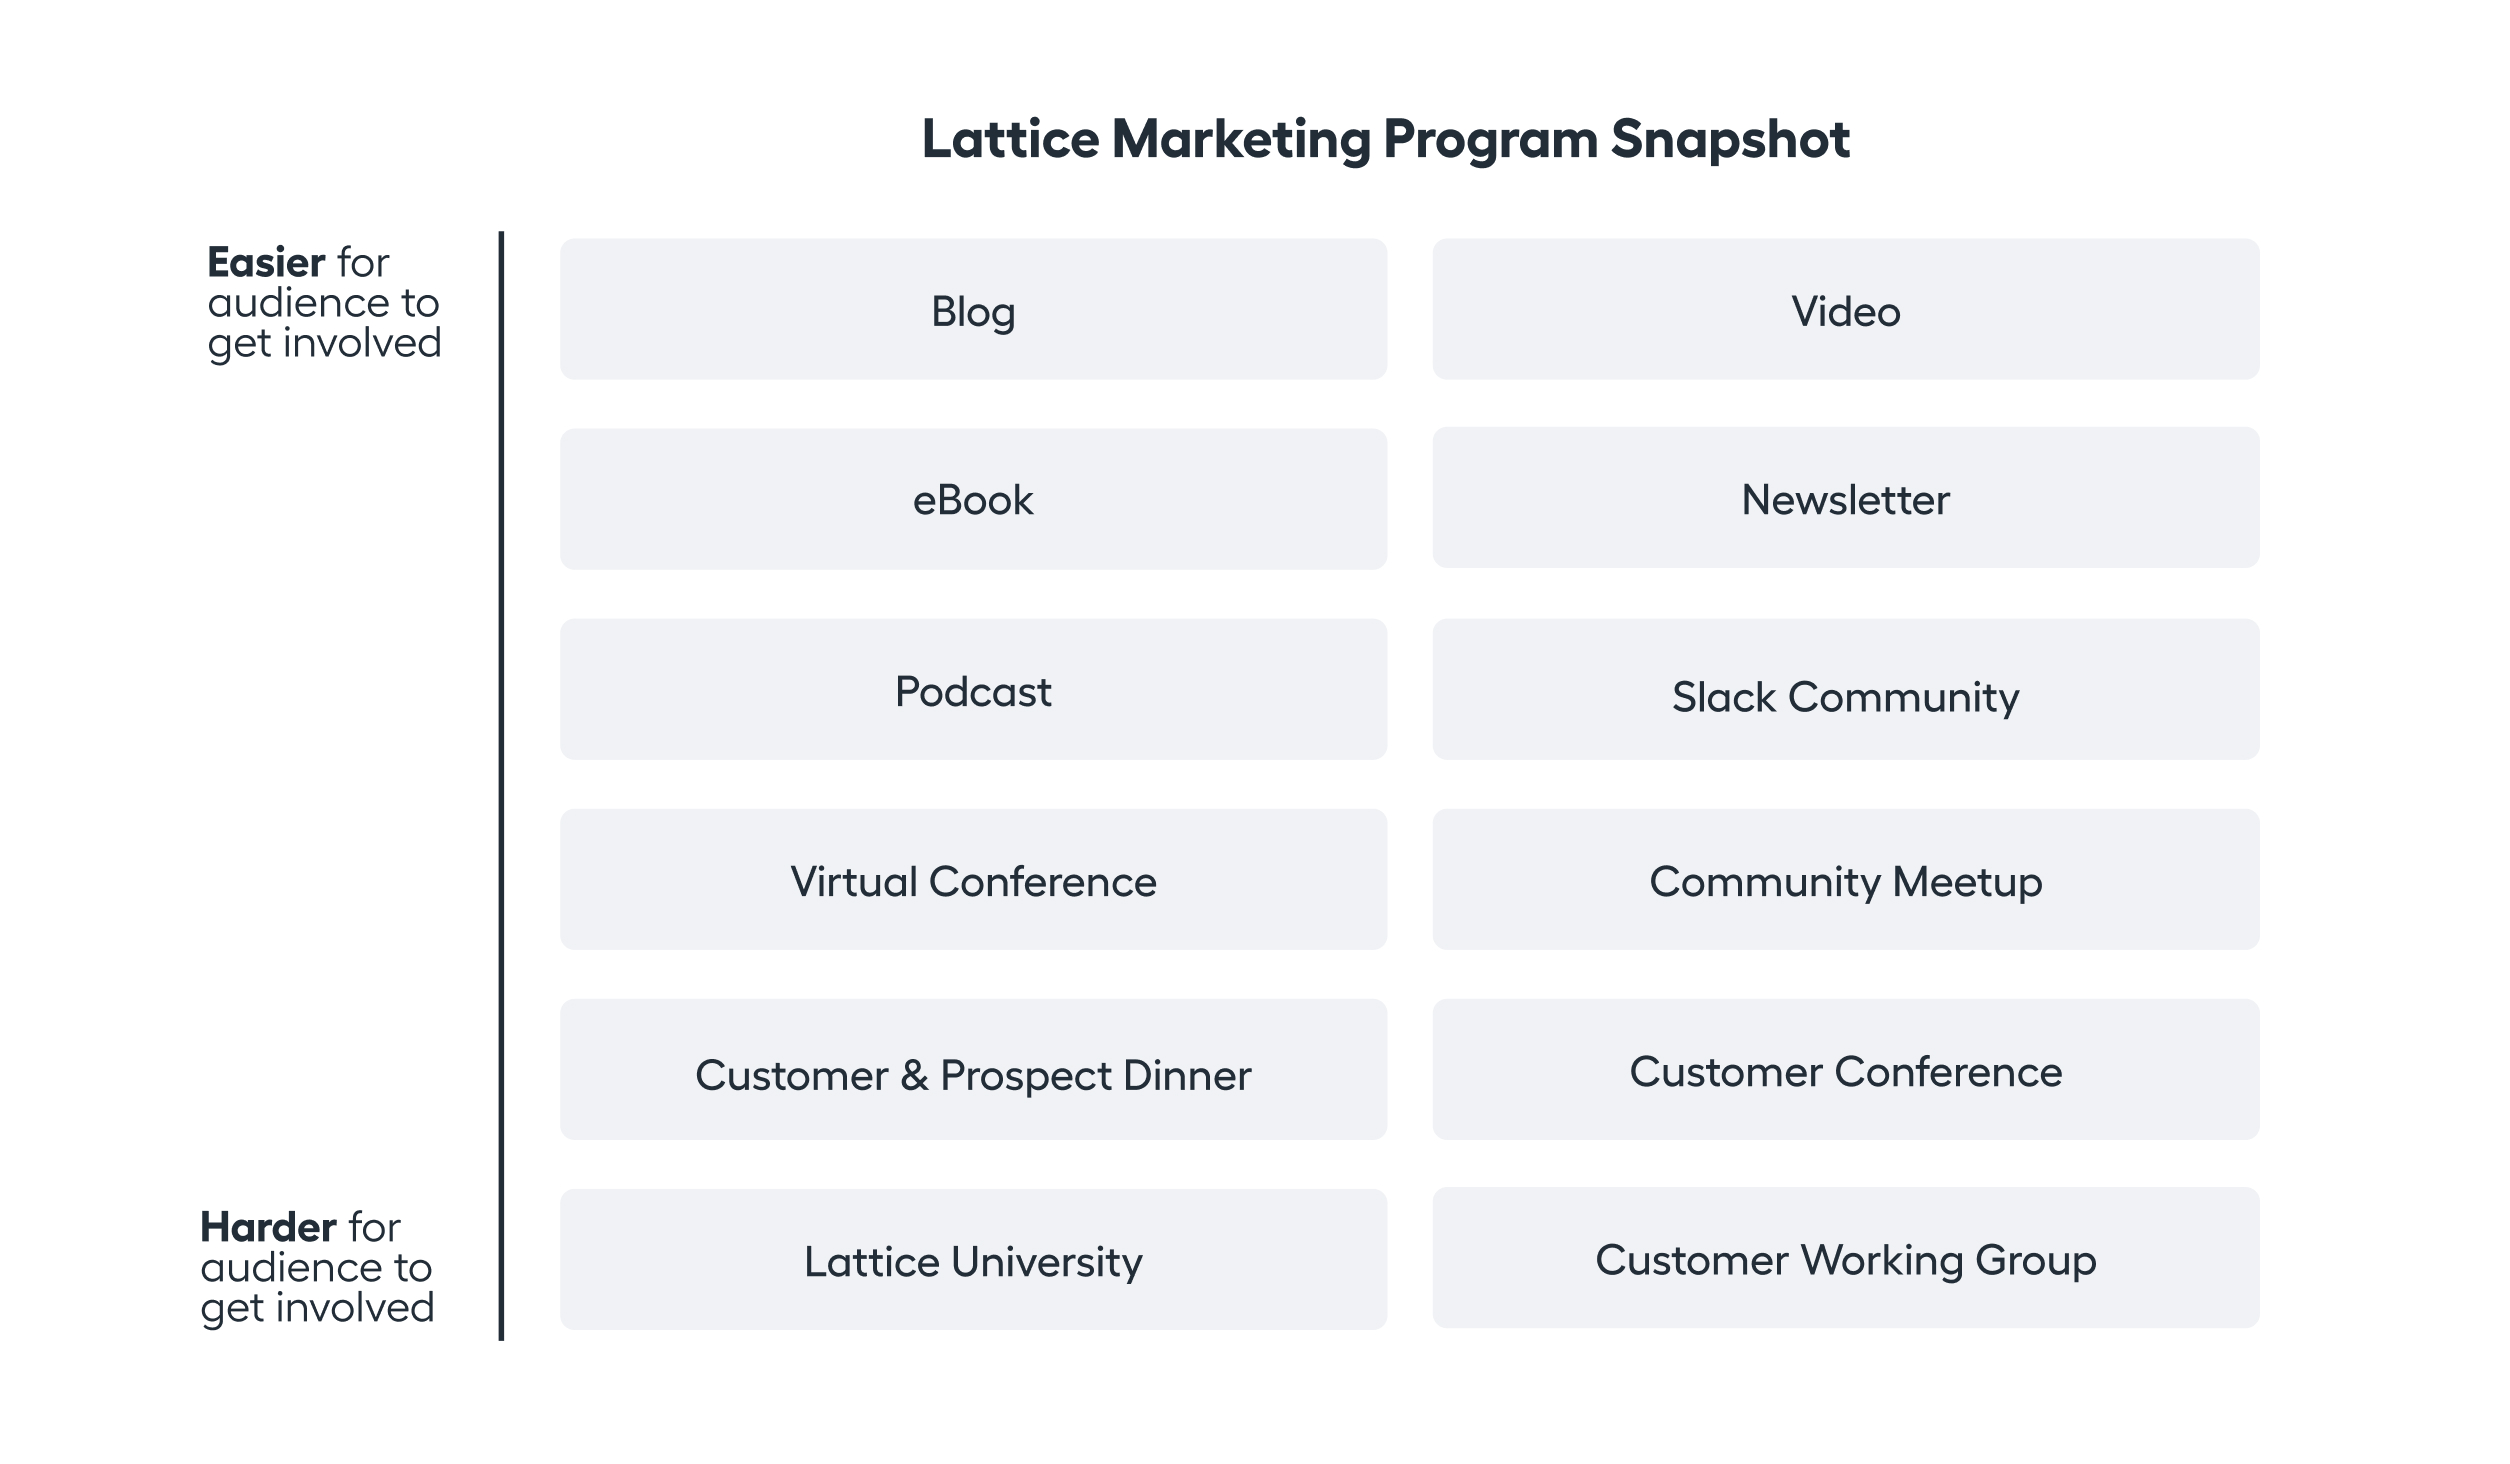 Lattice Marketing Program Snapshot